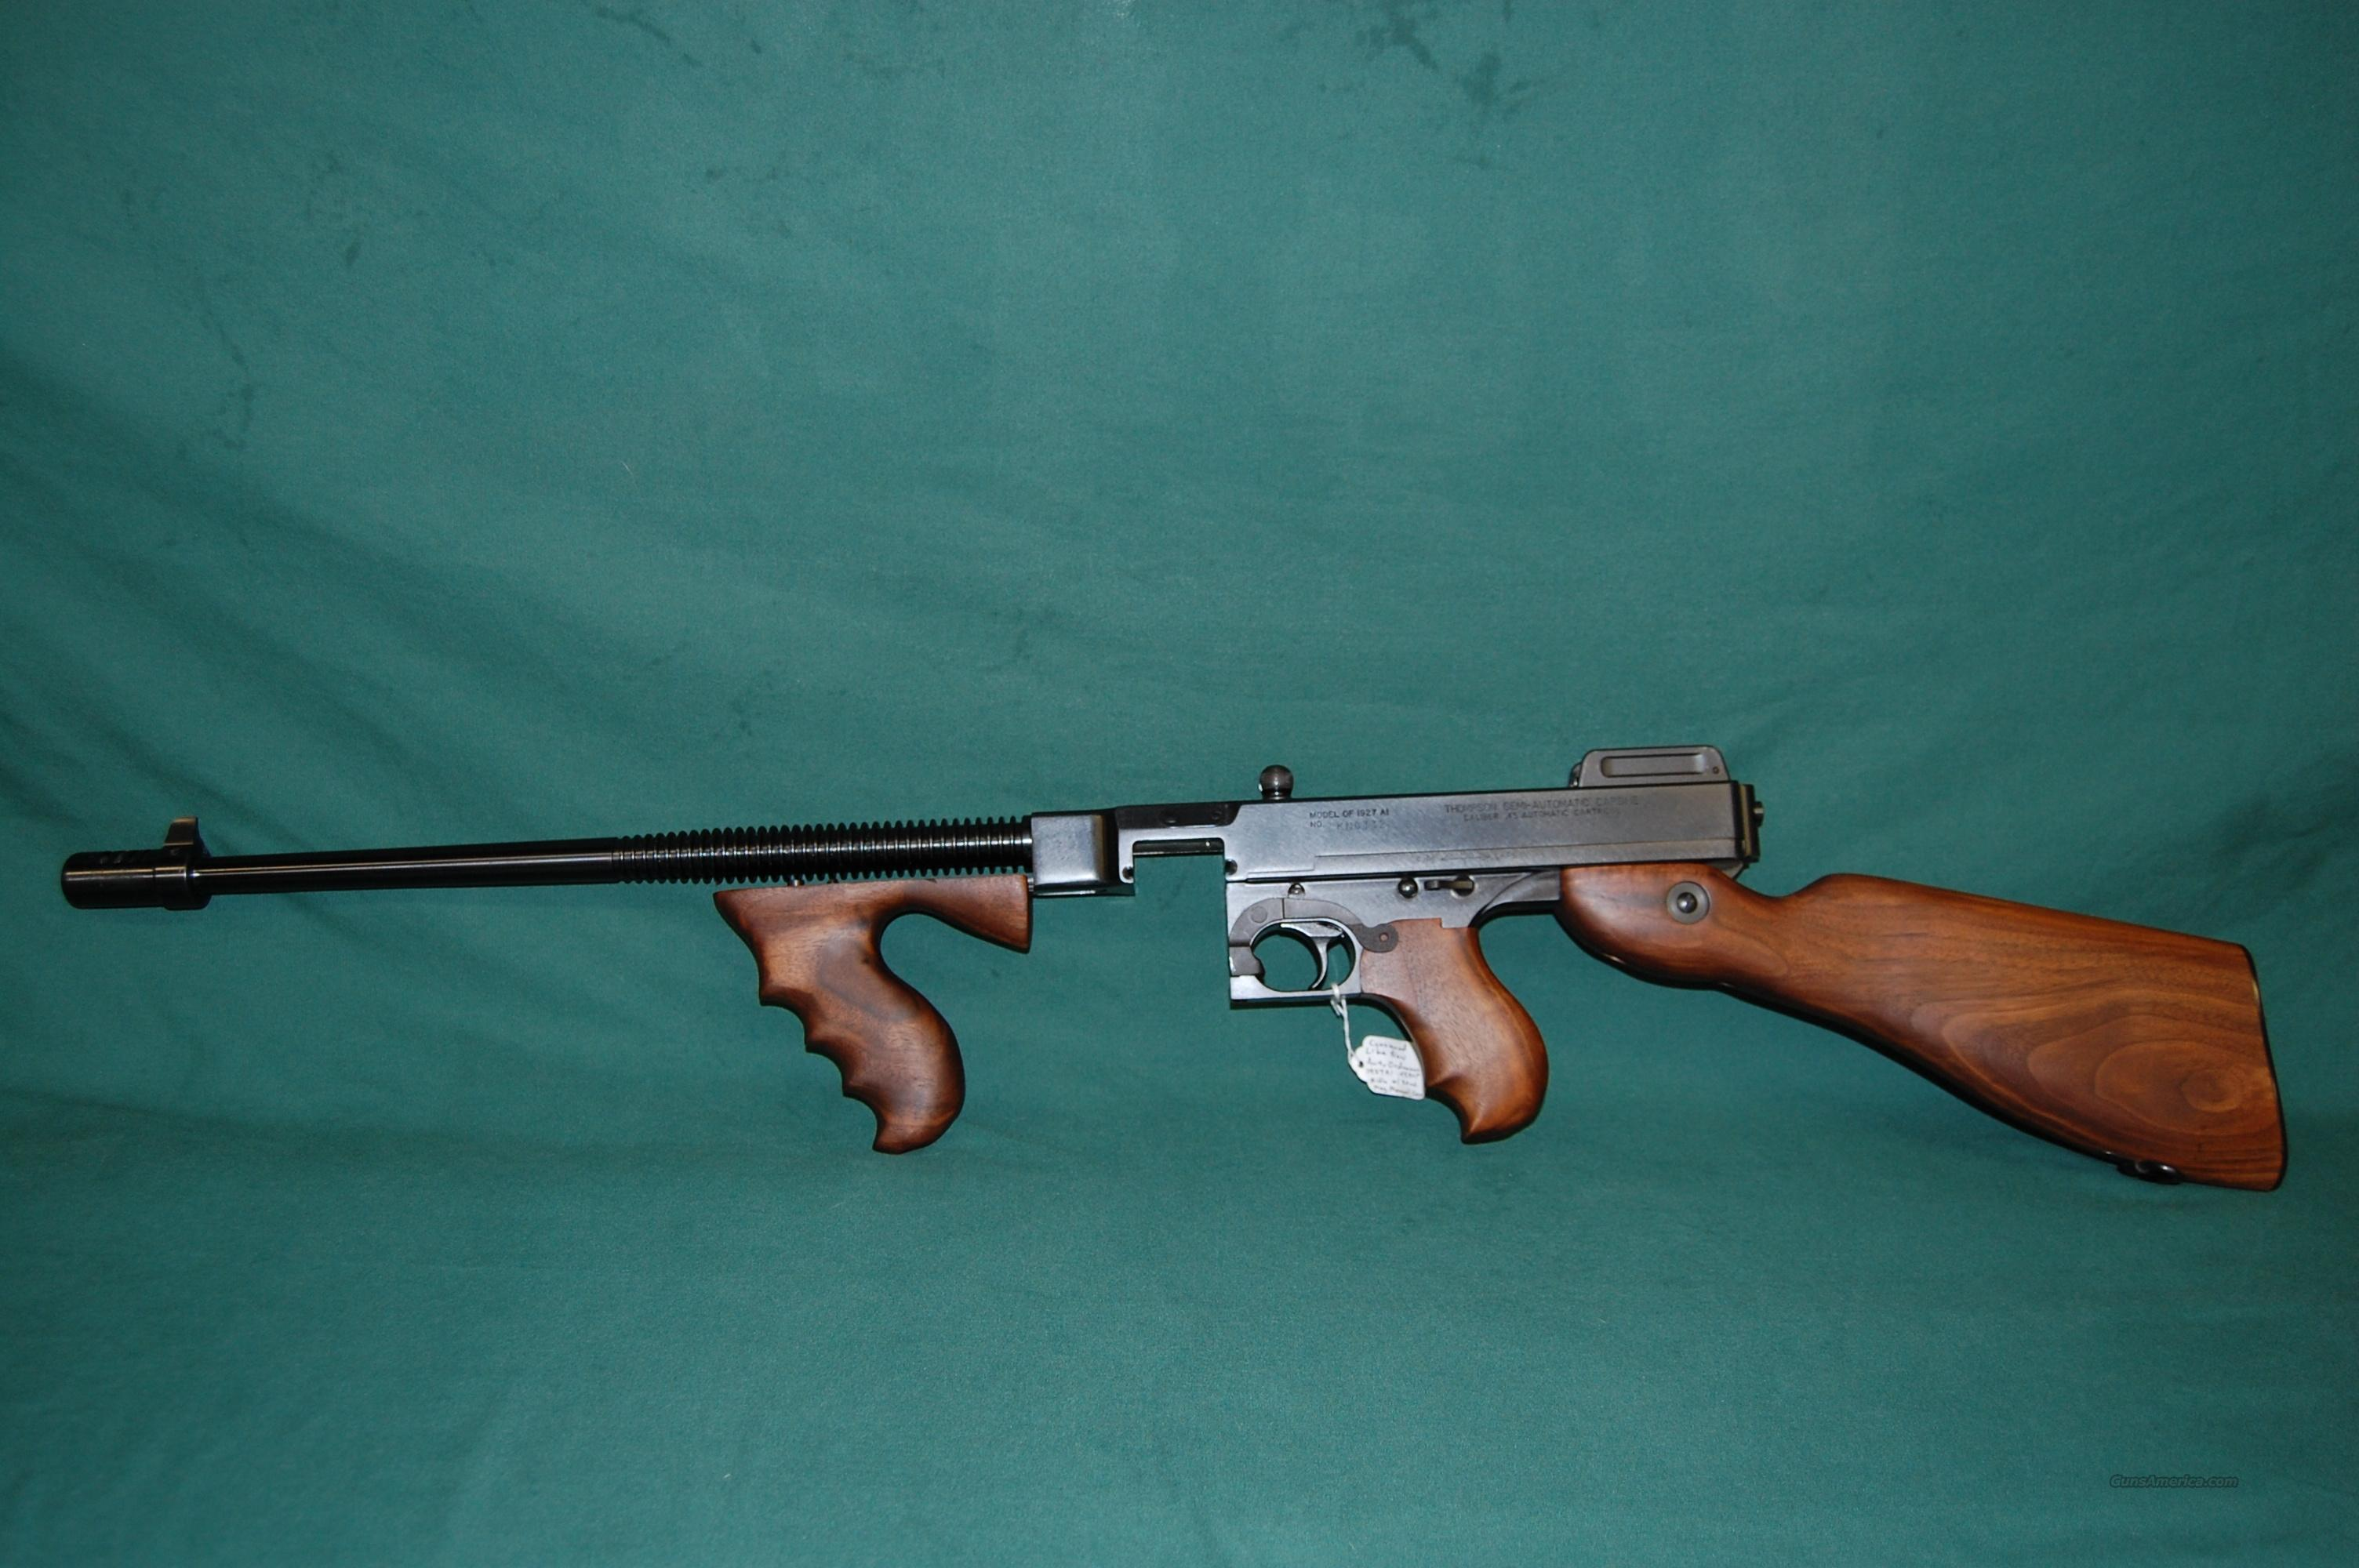 Thompson 1927A1 Deluxe  Guns > Rifles > Thompson Subguns/Semi-Auto